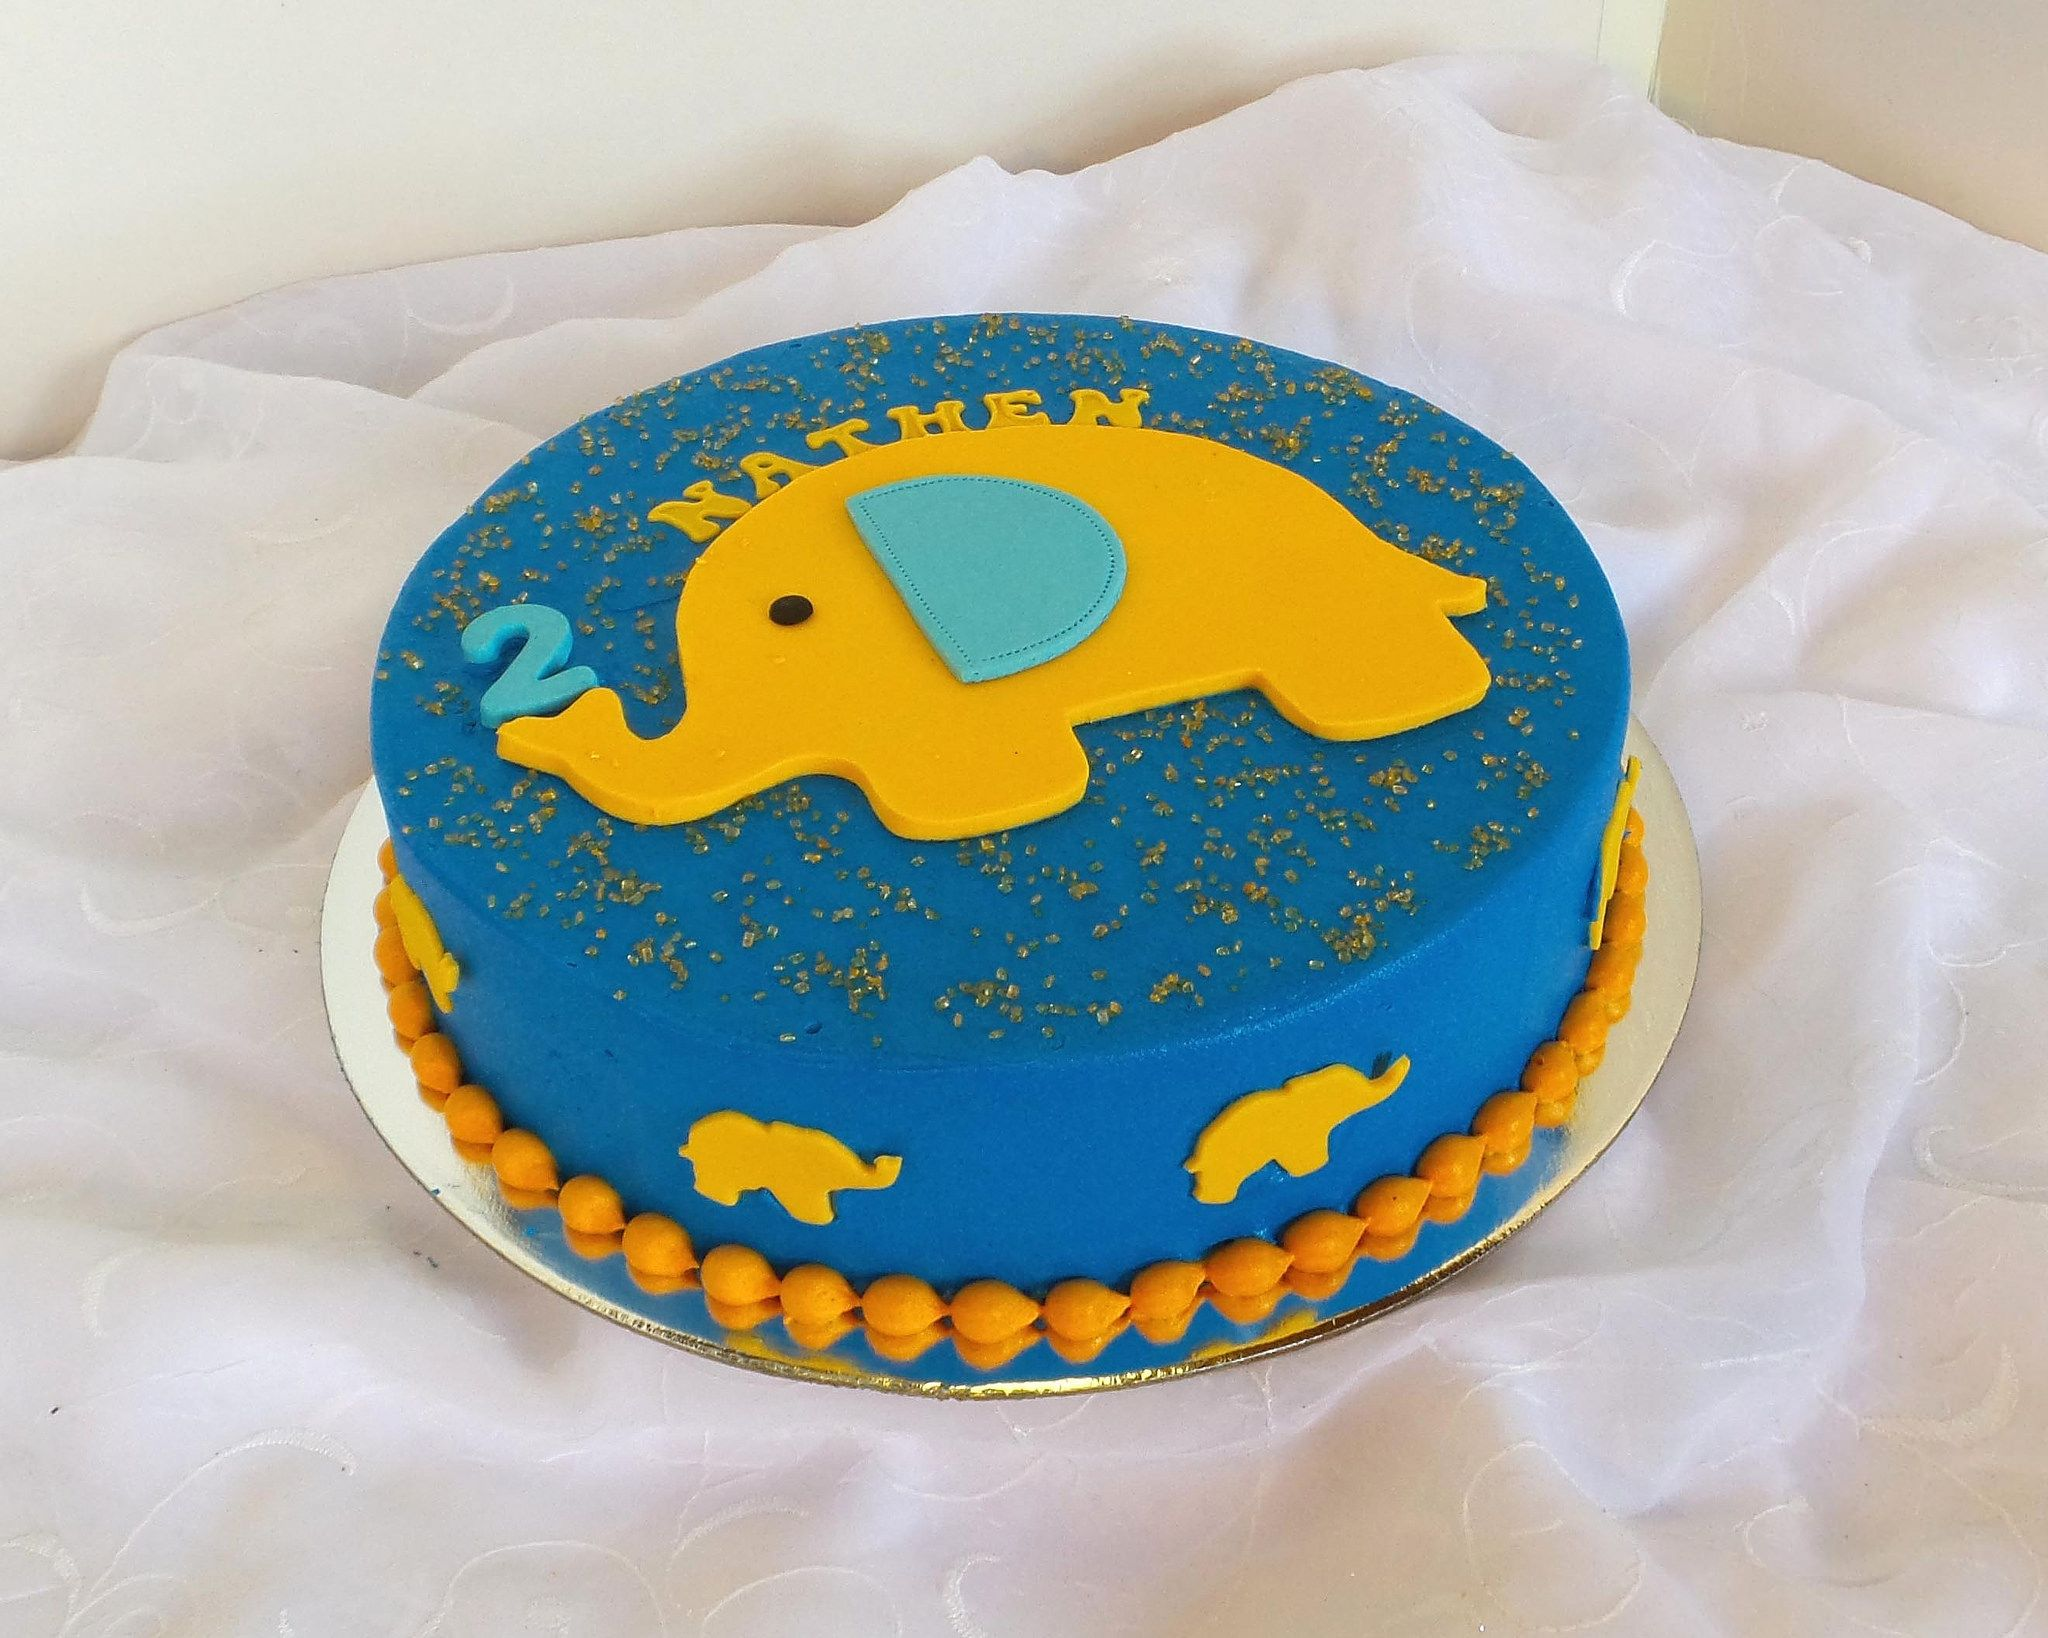 Simple Elephant Themed 2 Year Old Birthday Cake With Images 2